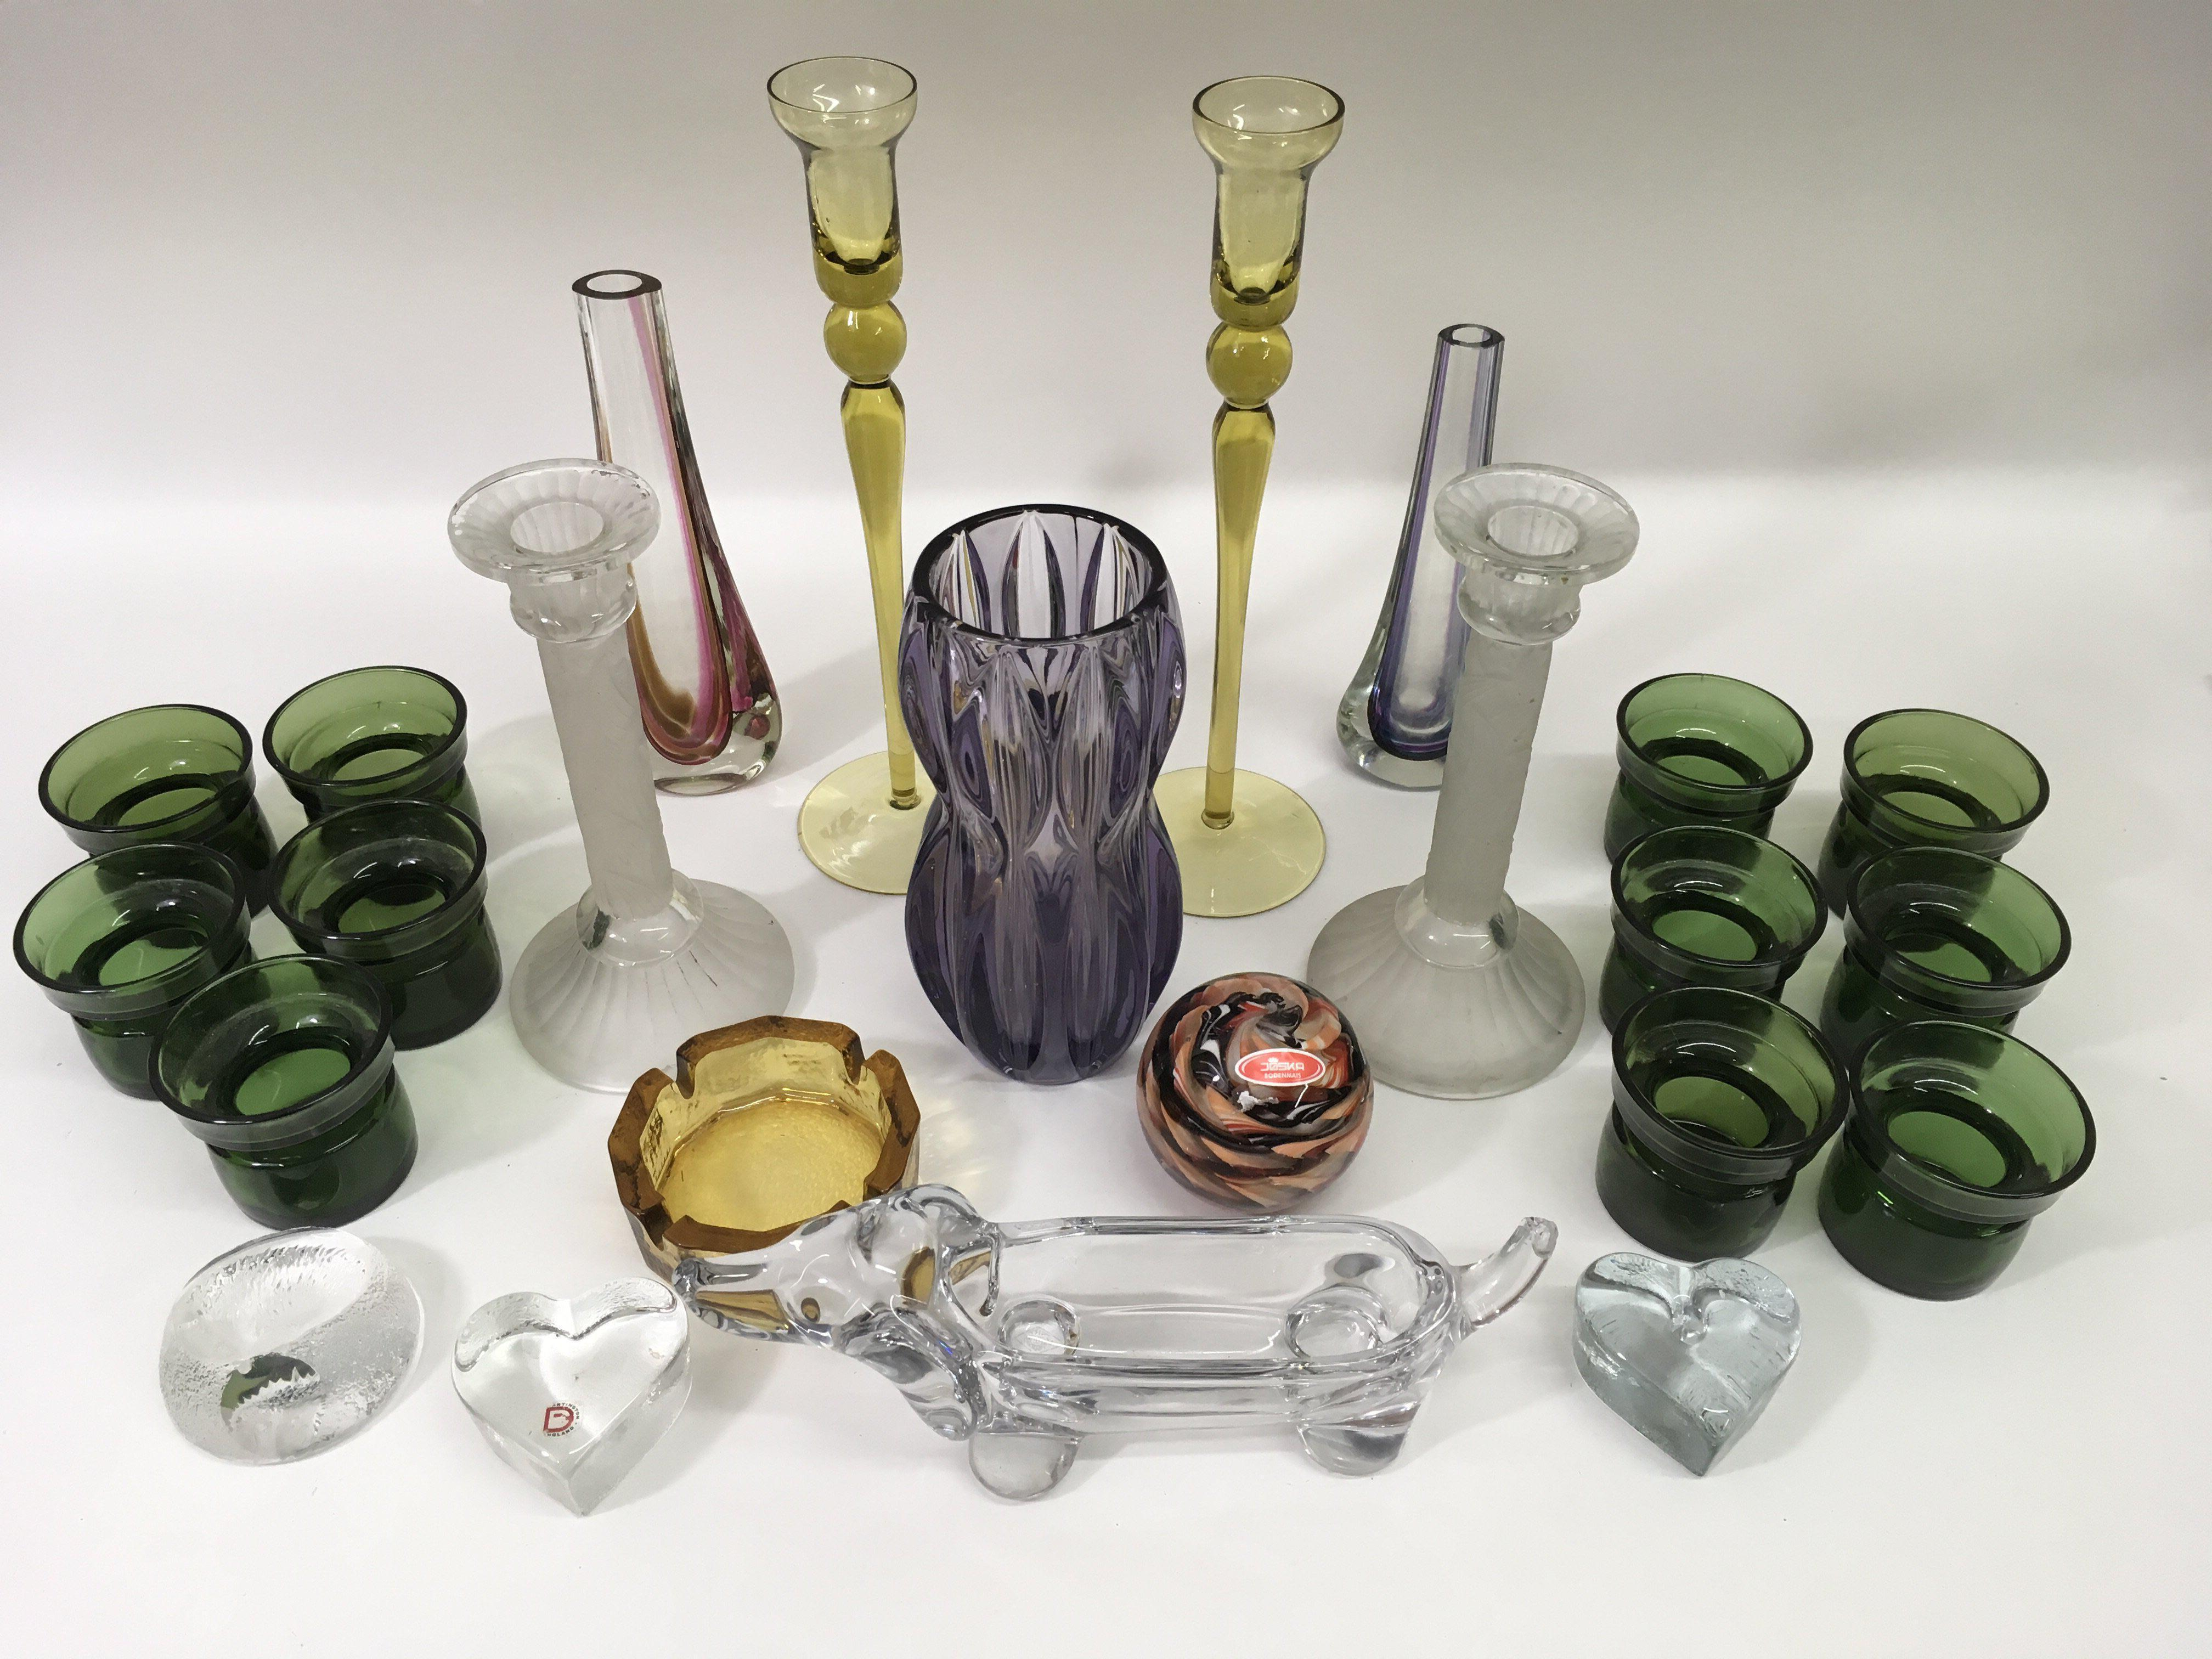 Lot 758 - A collection of art glass including a Czech vase,